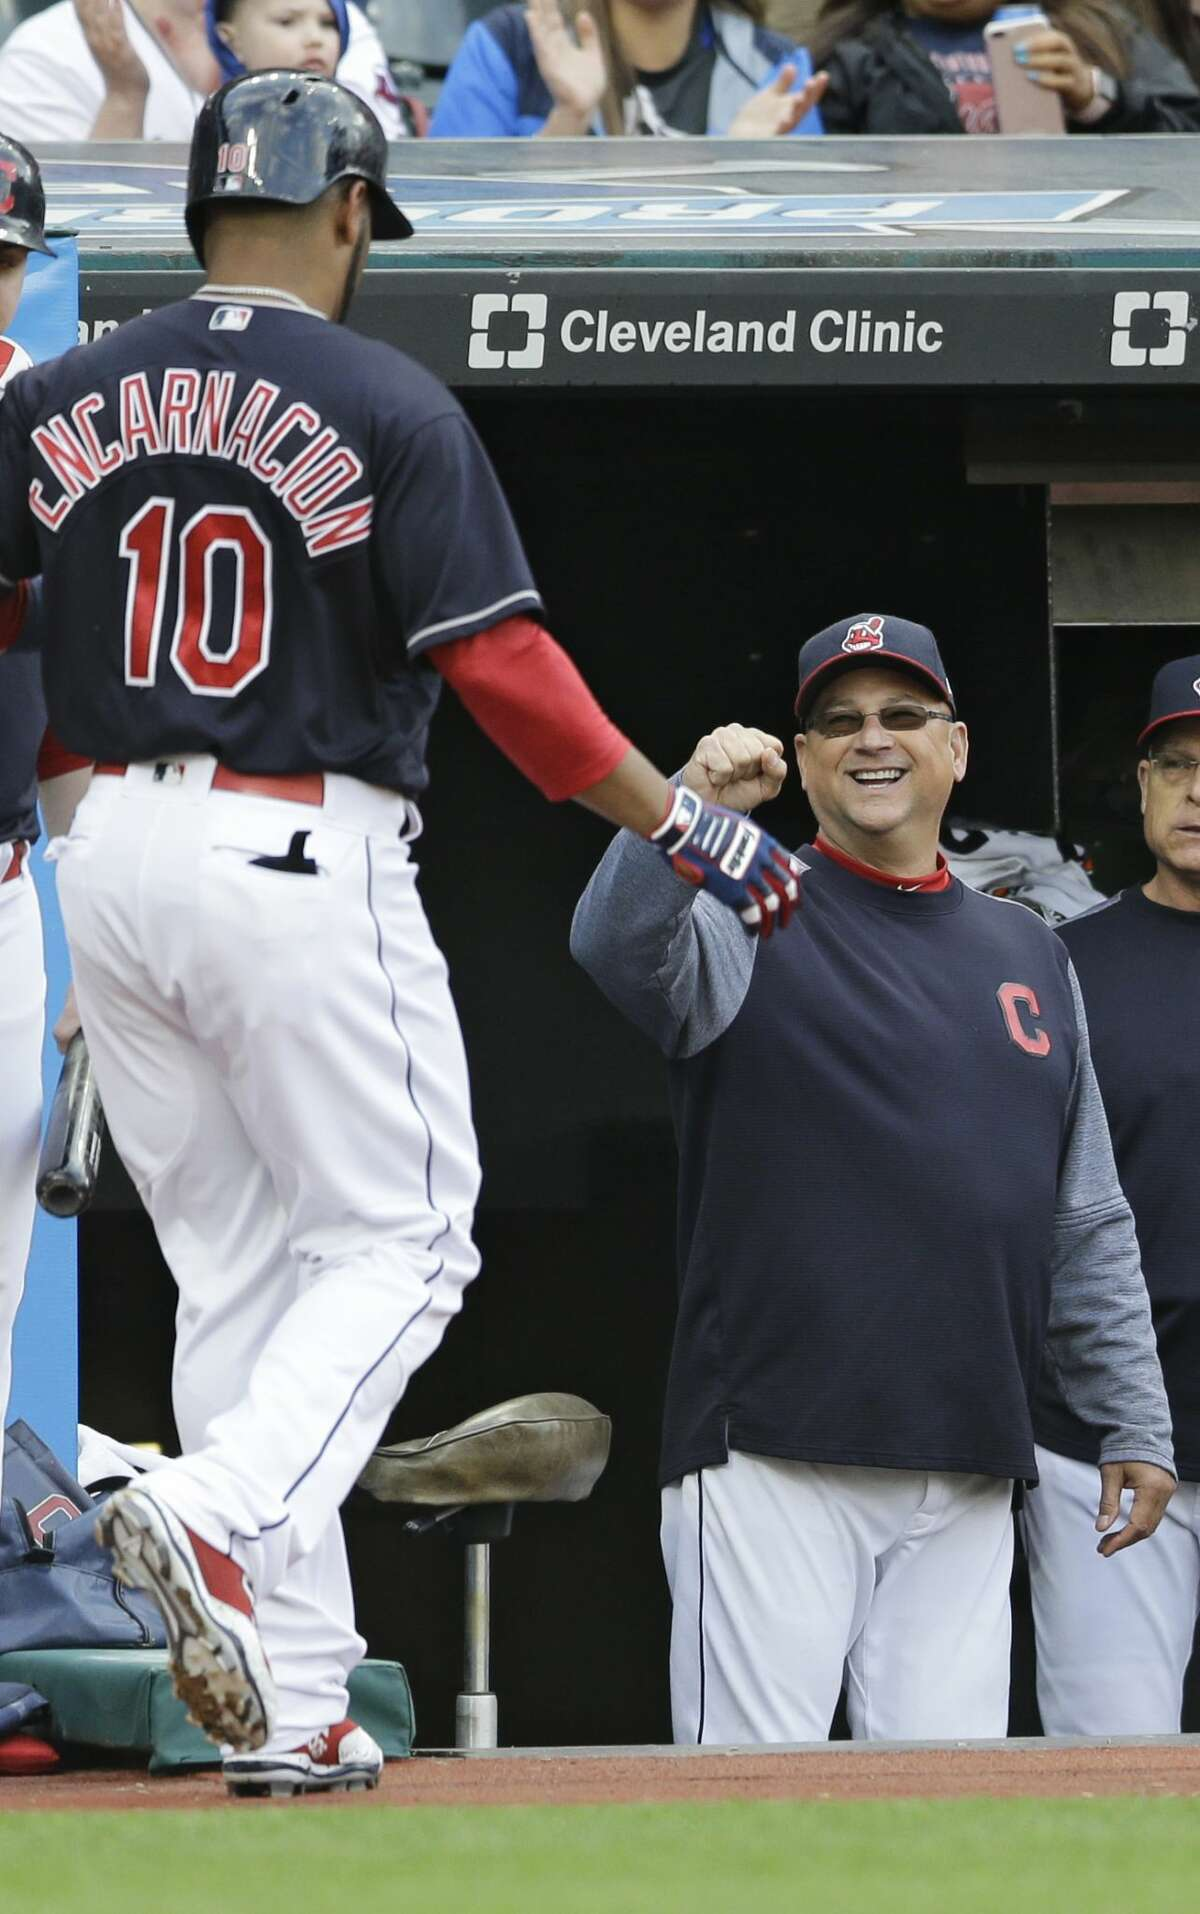 Cleveland Indians manager Terry Francona, right, congratulates Edwin Encarnacion after Encarnacion hit a solo home run off Houston Astros starting pitcher Mike Fiers in the second inning of a baseball game, Thursday, April 27, 2017, in Cleveland. (AP Photo/Tony Dejak)